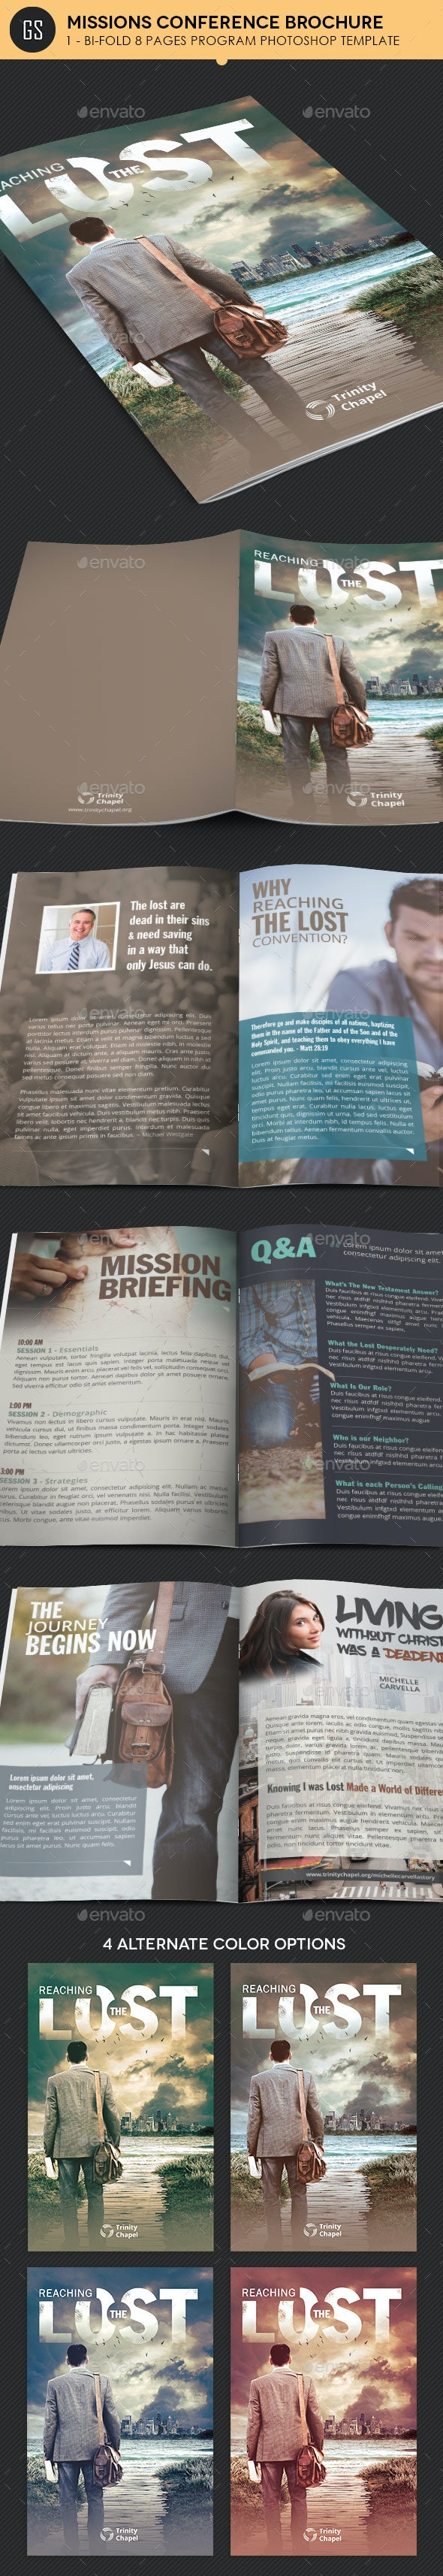 Missions Conference Brochure Template - Informational Brochures